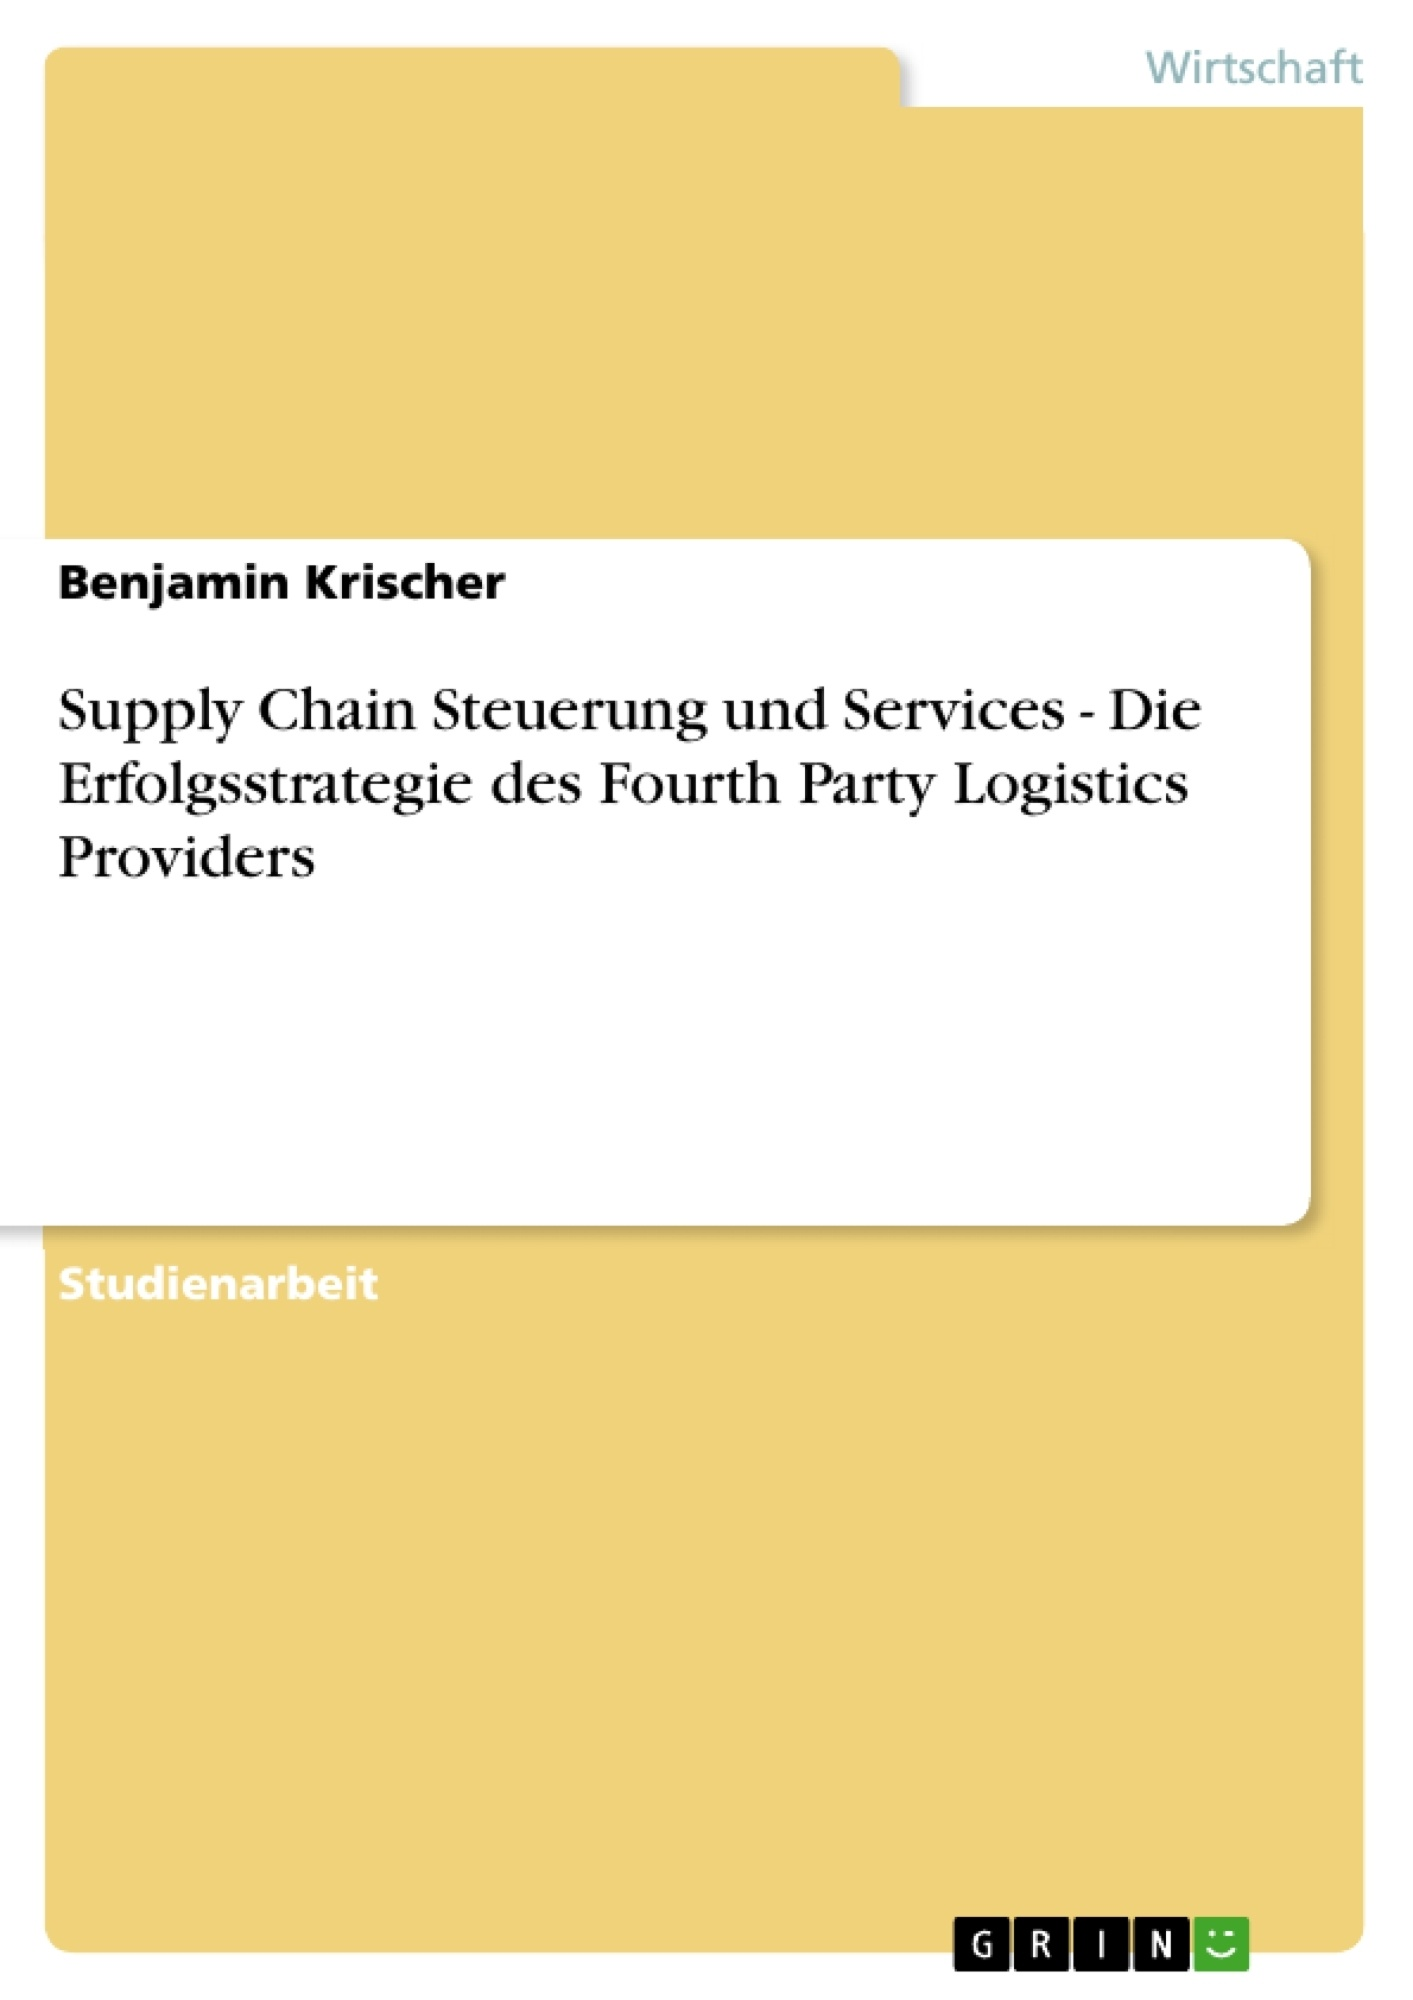 Titel: Supply Chain Steuerung und Services - Die Erfolgsstrategie des Fourth Party Logistics Providers